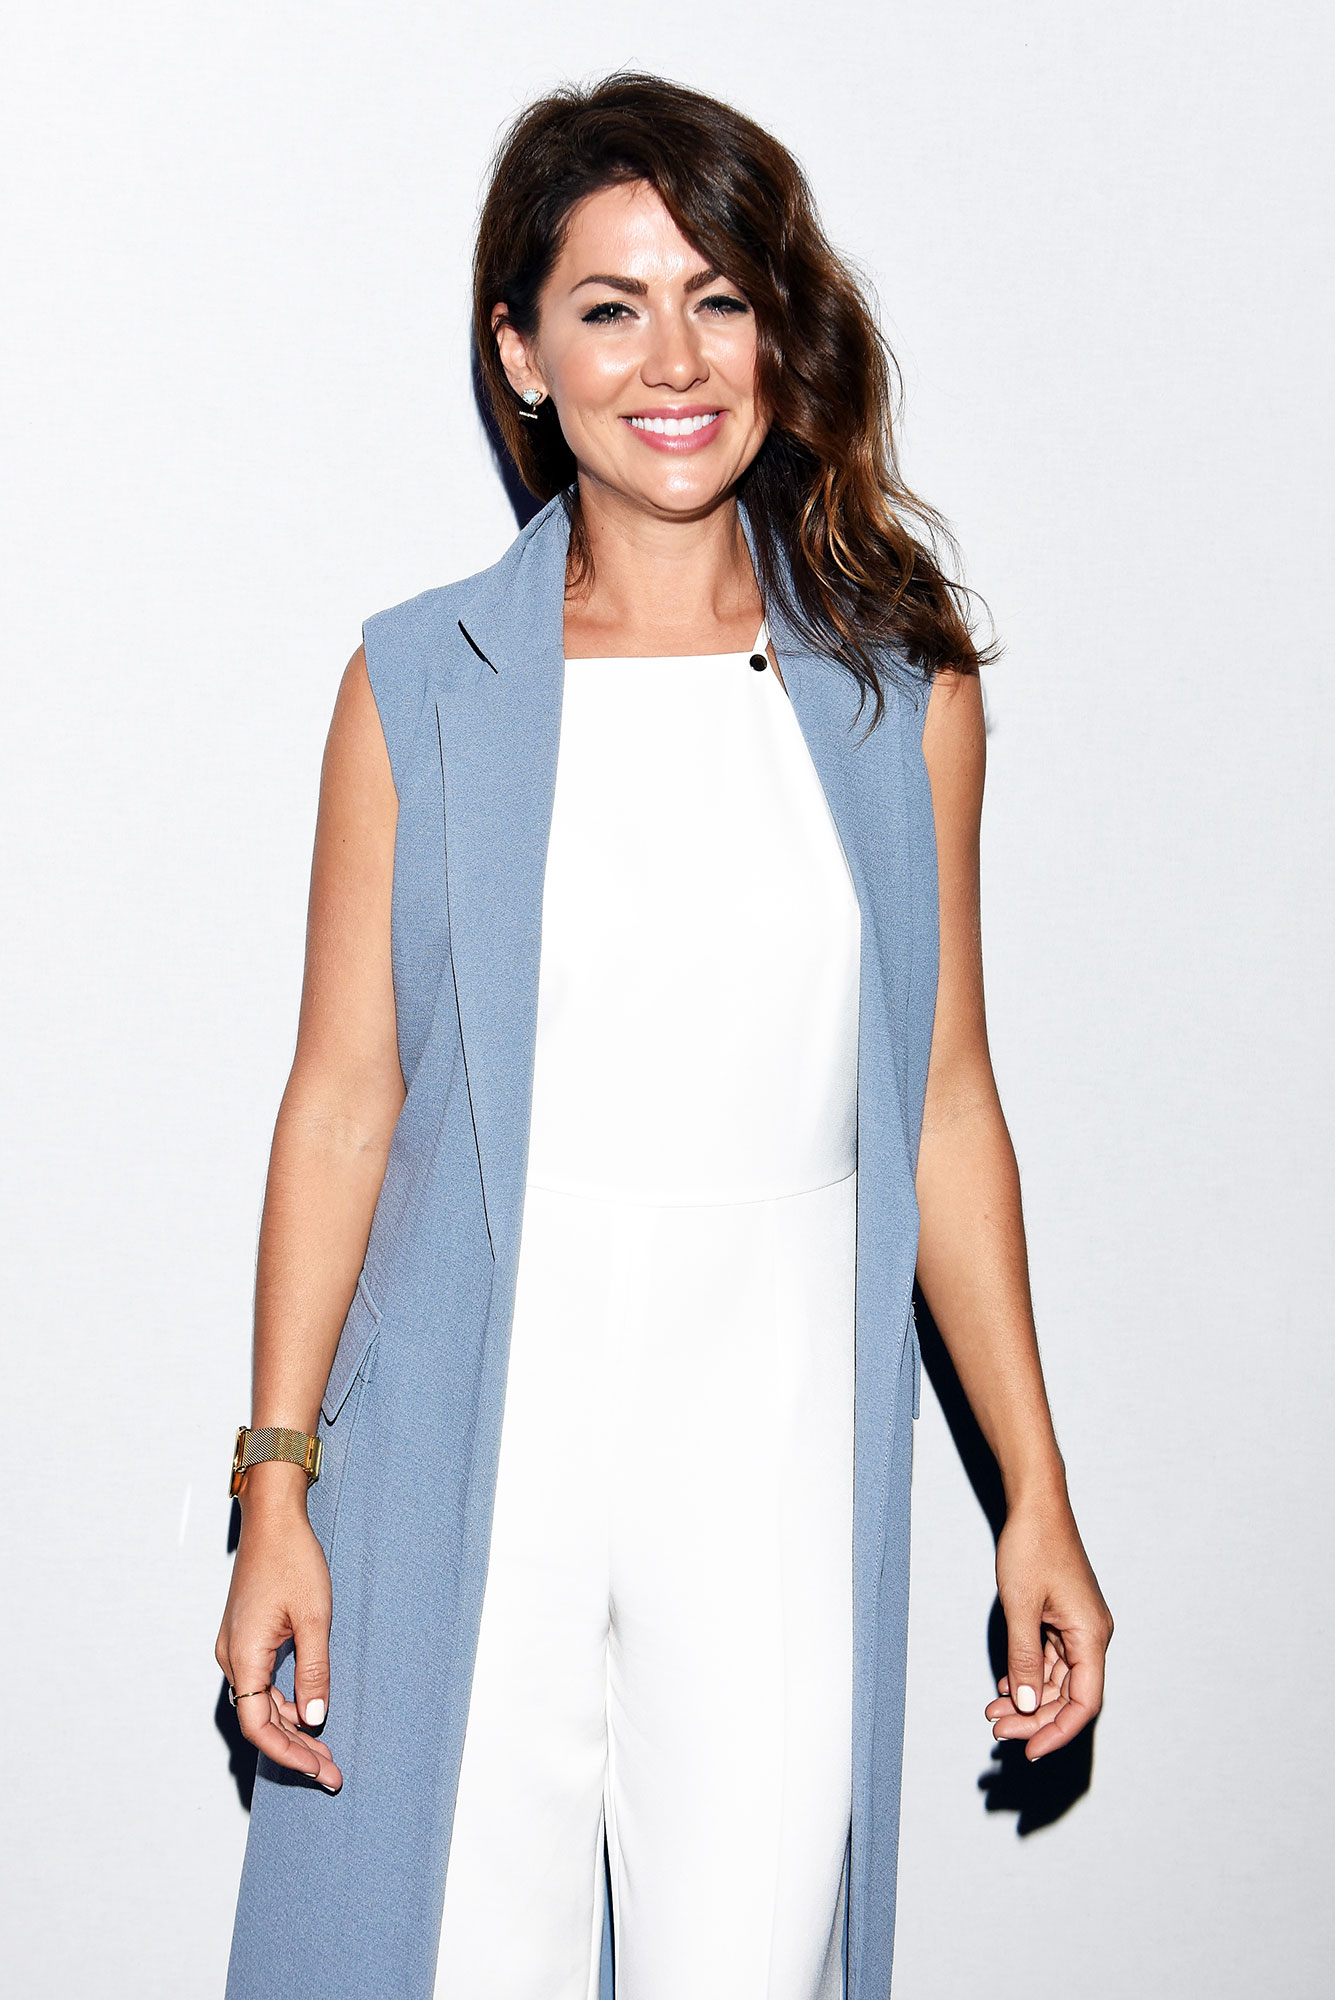 Bachelorette Jillian Harris Is Here with the Coziest Loungewear - TV personality Jillian Harris attends Son Jung Wan Spring 2016 during New York Fashion Week: The Shows at The Dock, Skylight at Moynihan Station on September 12, 2015 in New York City.